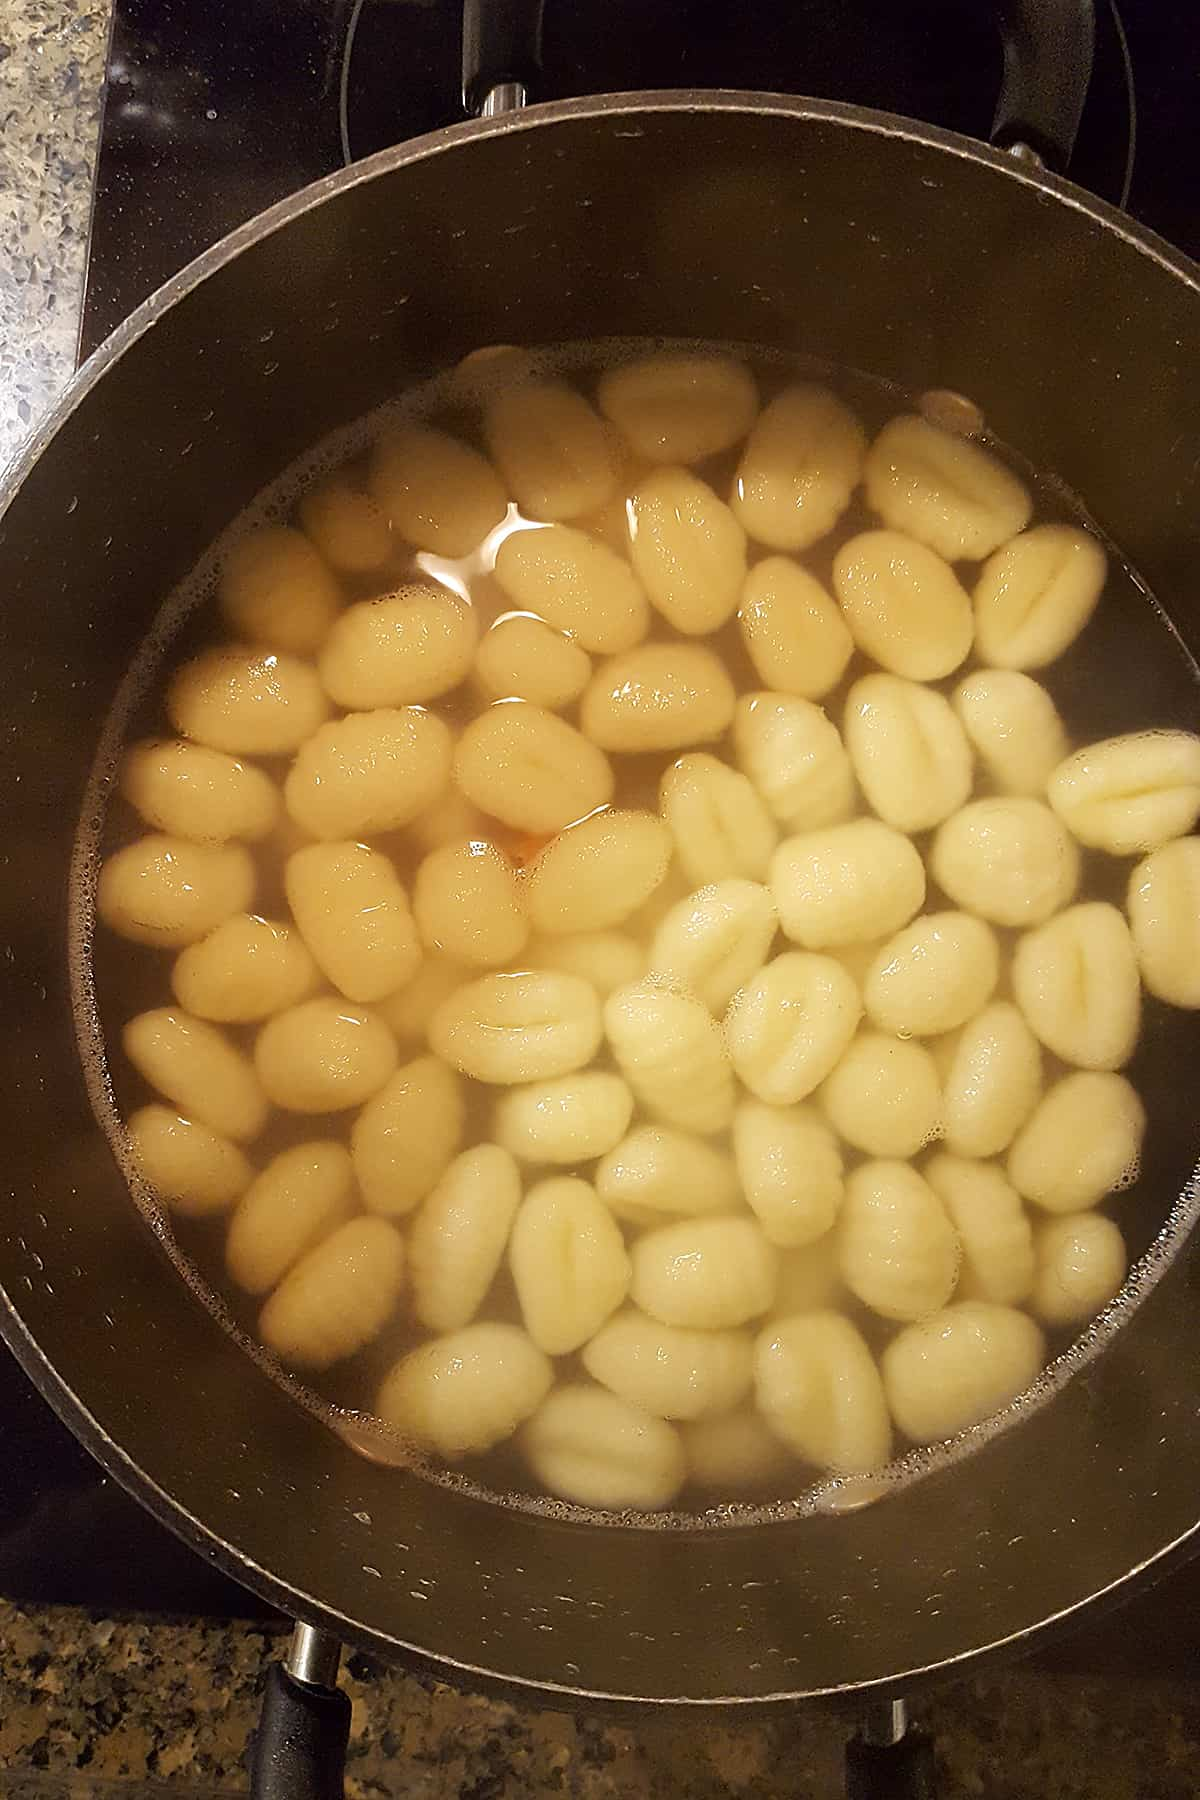 Gnocchi in salted boiling water.